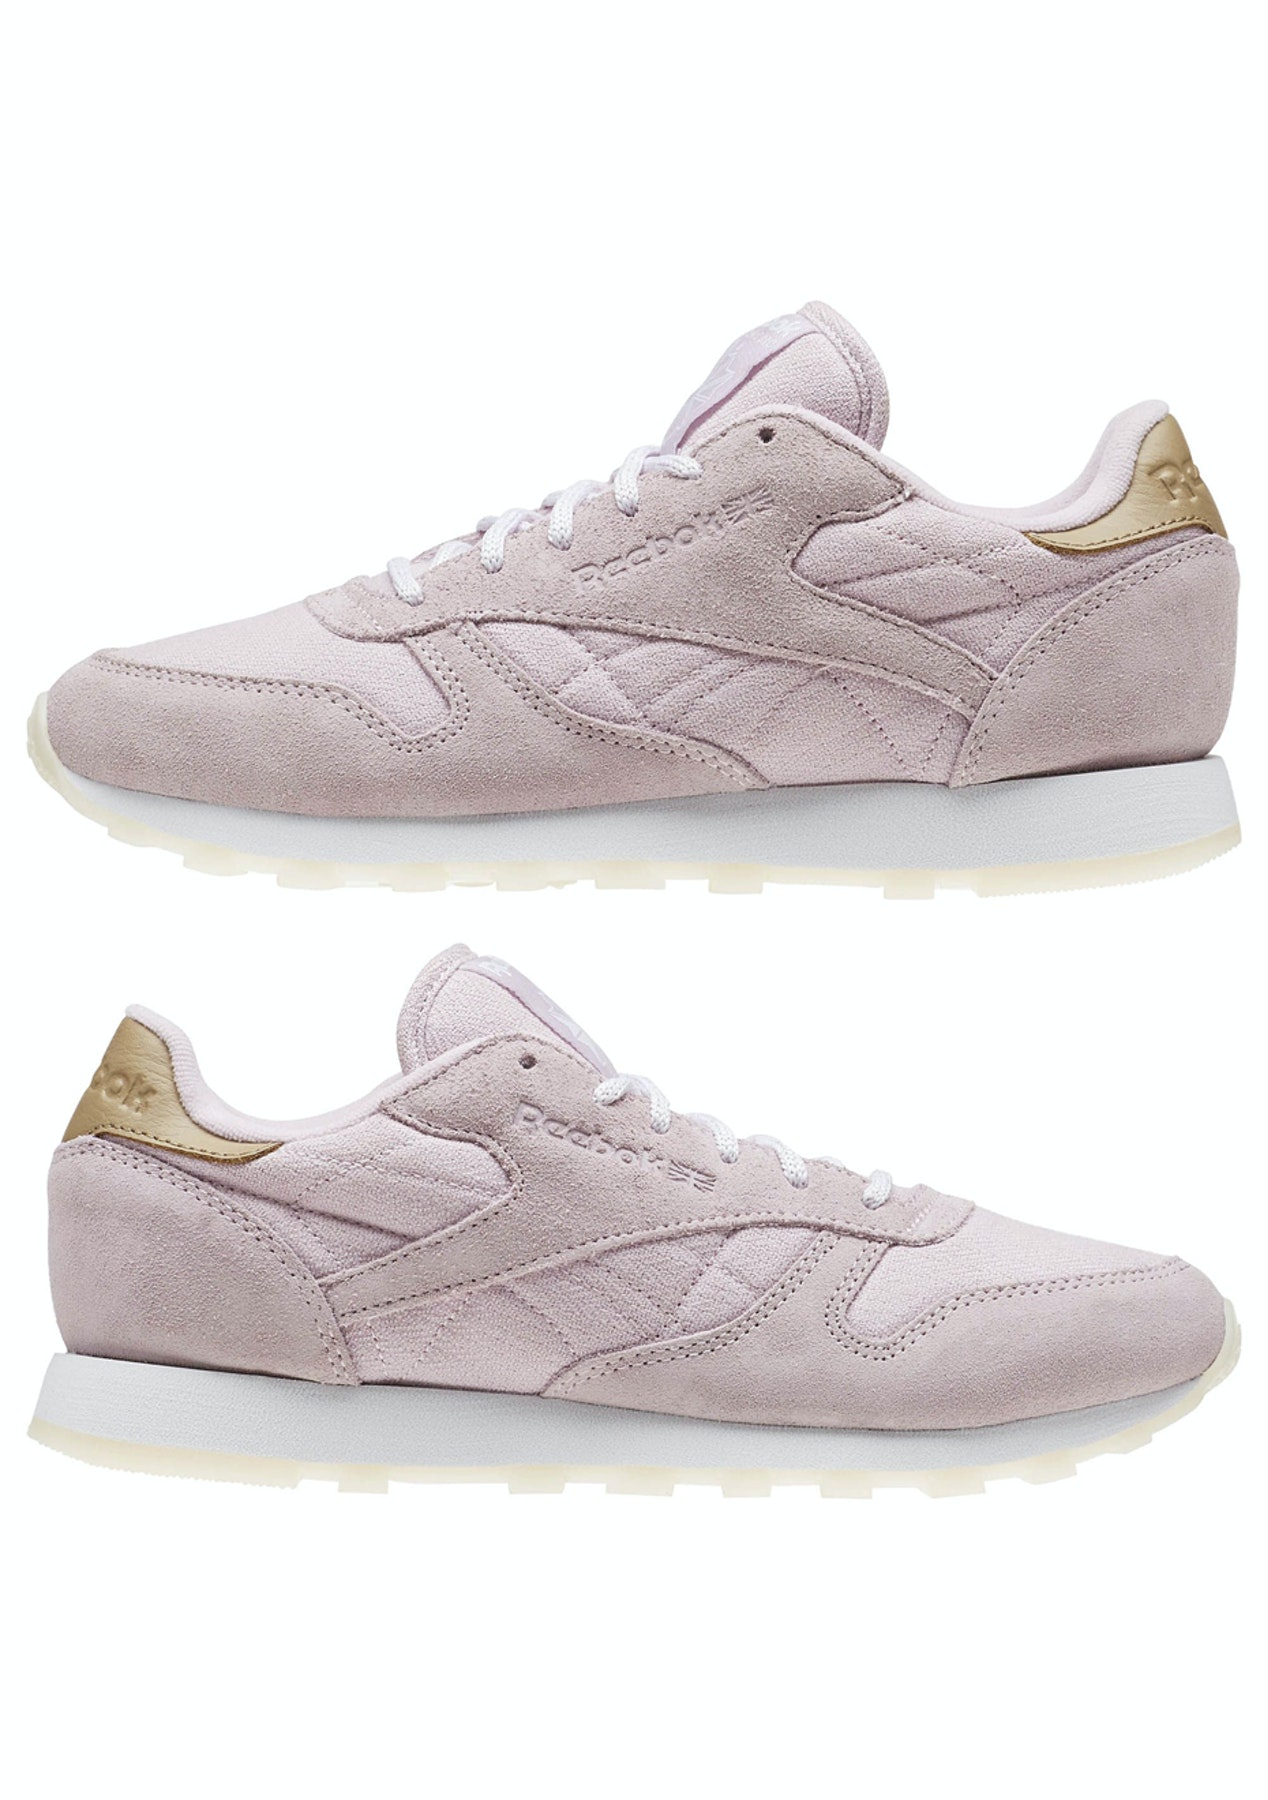 016ab16284d Reebok Womens - Classic Leather Sea-Worn - Shell Purple   White - Final  Few  Shoes   Bags - Onceit